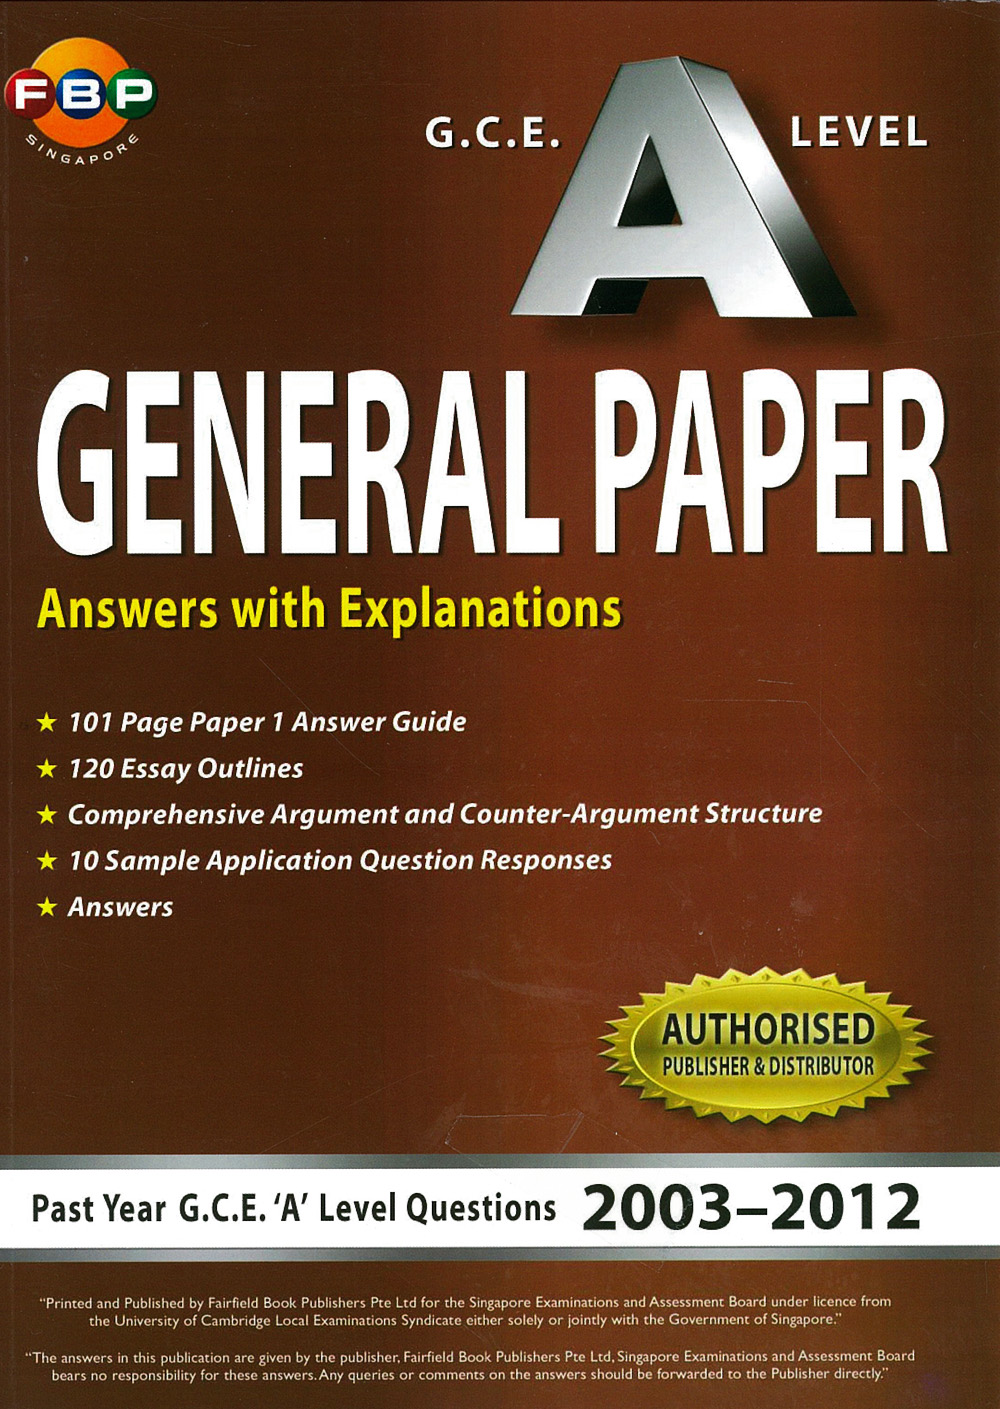 general paper model essay Welcome to the site if you're looking for help with skills or content building, you've come to the right place you'll find written and video resources (updated every two days) that will help your understanding of the subject.